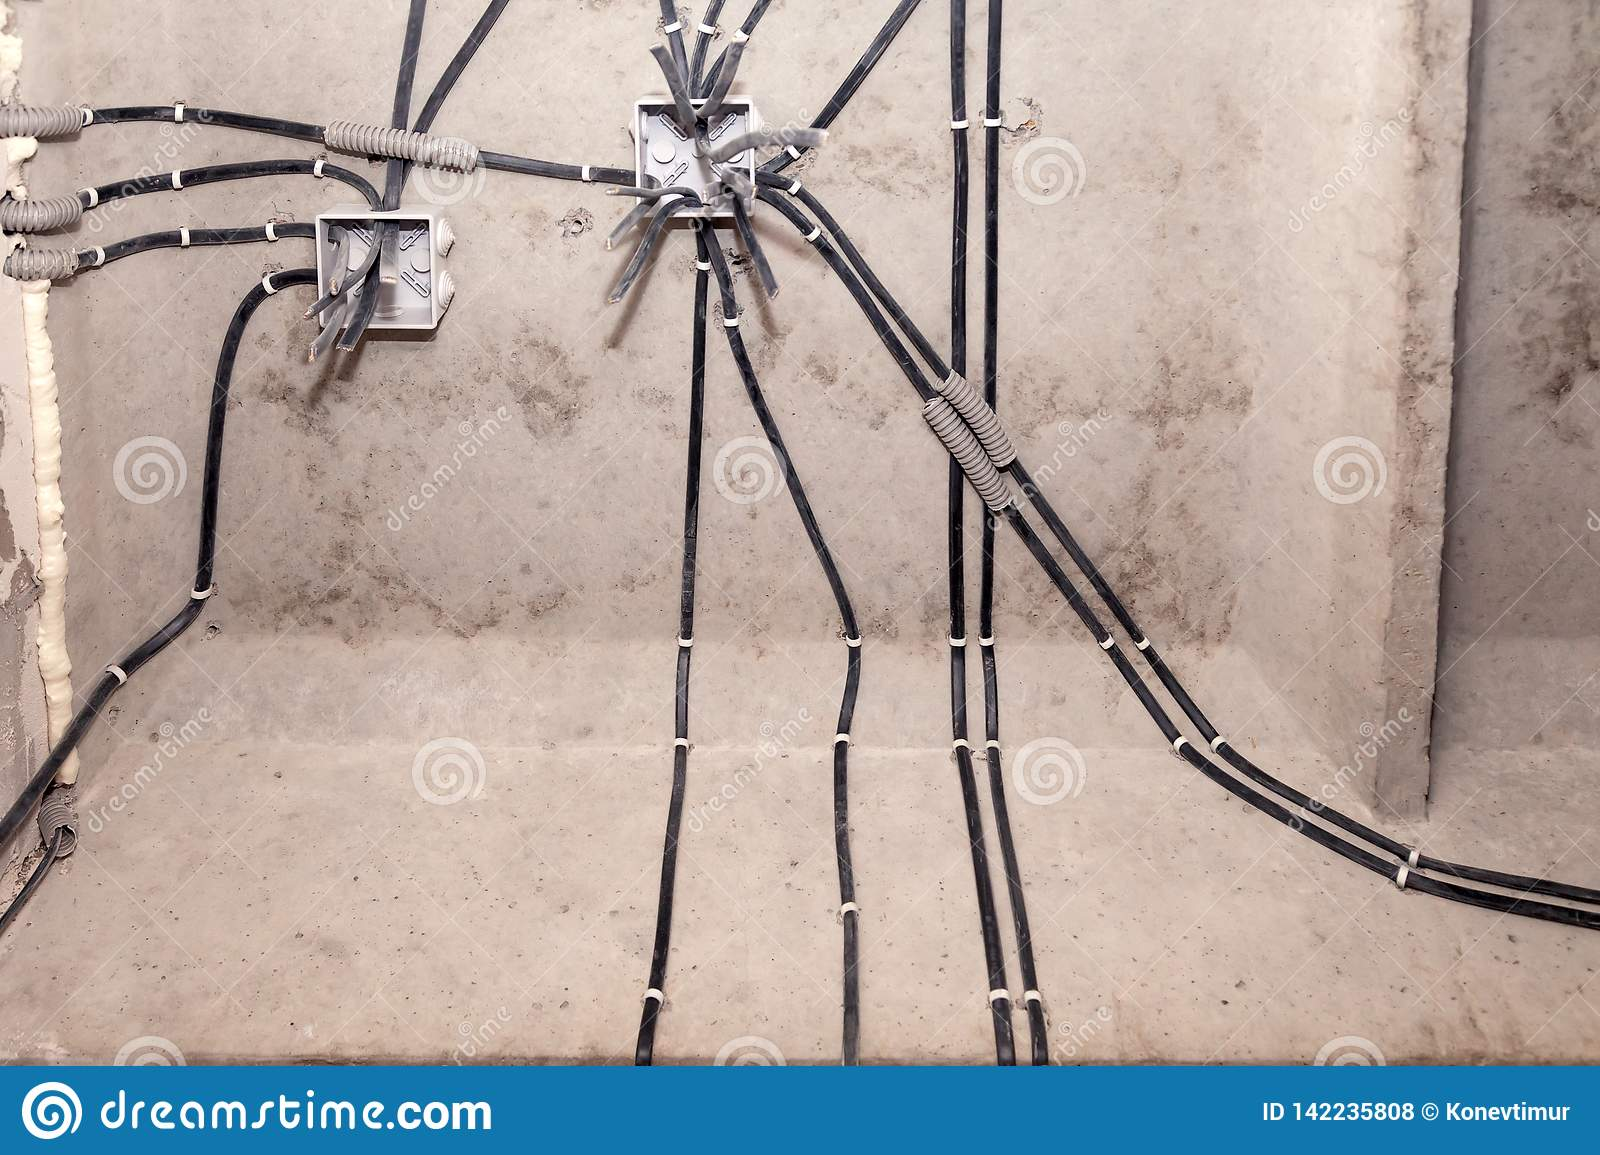 Professional Draft Electrical Wiring In House Or Apartment ... on